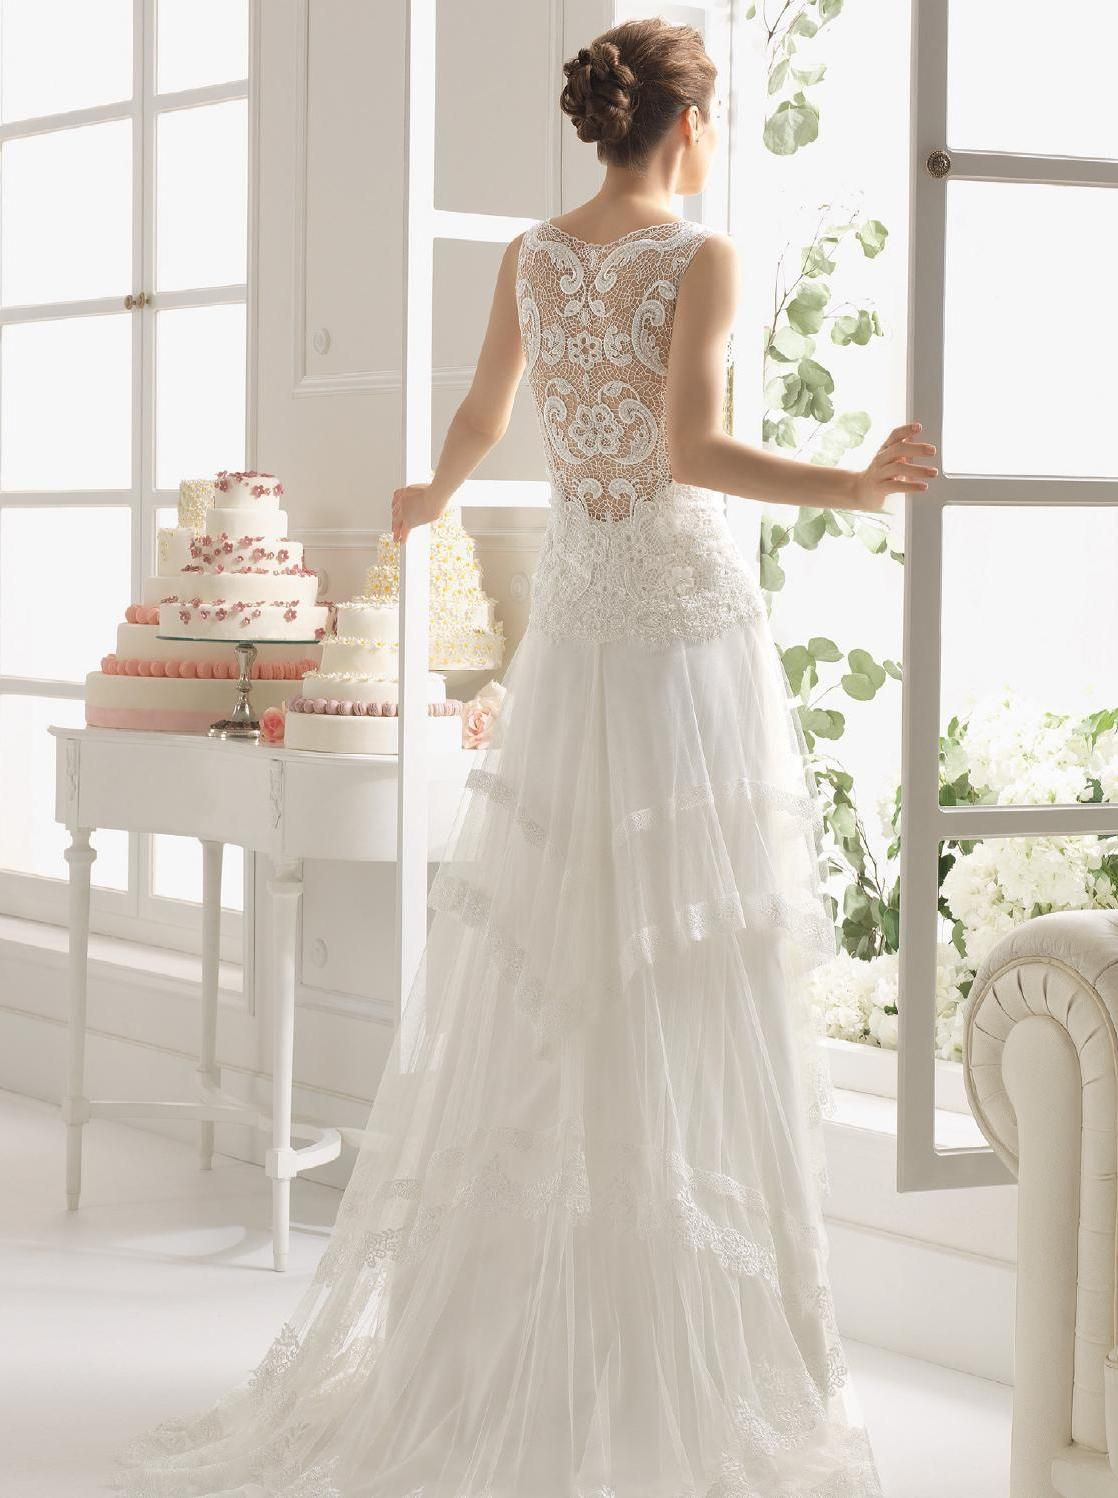 Wedding dresses sacramento  Pin by 旧akuru とかいう人 on 終wedding  Pinterest